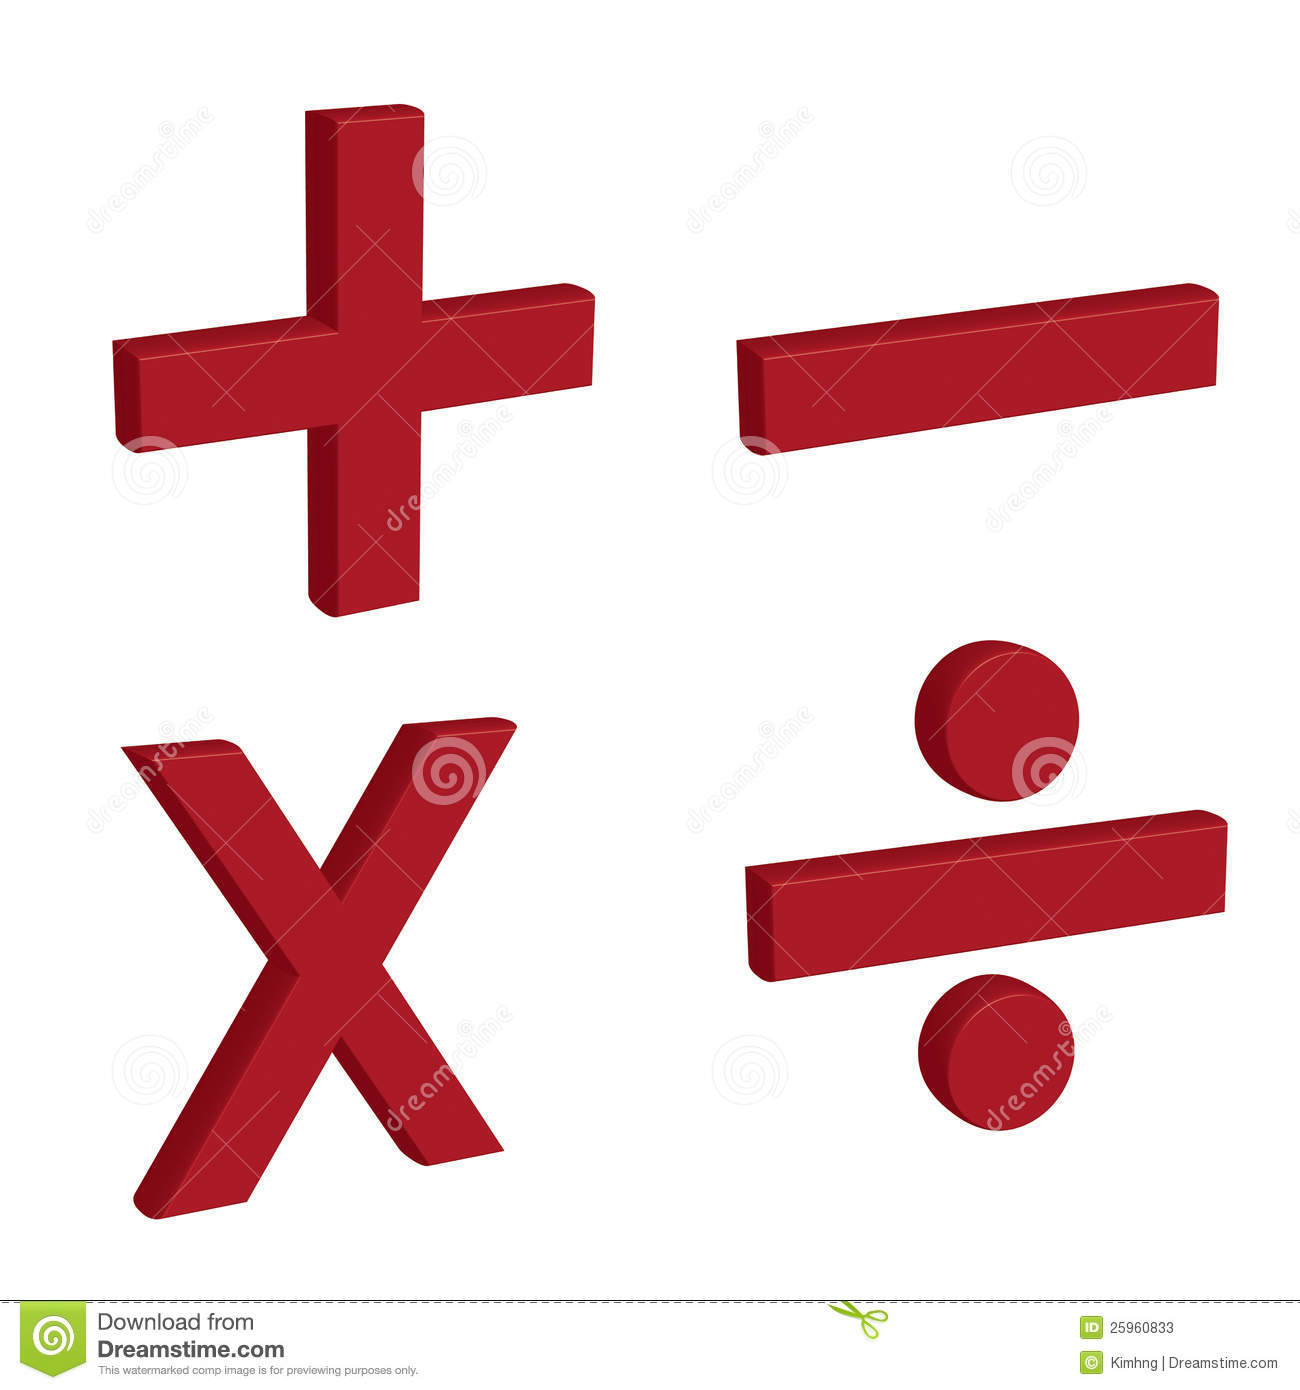 Arithmetic Symbols Stock Photos  Image 25960833. Rival Football Signs Of Stroke. Anterior Communicating Artery Signs Of Stroke. Functional Outcome Signs Of Stroke. Beetlejuice Signs Of Stroke. Daughter Signs Of Stroke. Laminitis Signs. Oklahoma Signs Of Stroke. Heartworms Signs Of Stroke